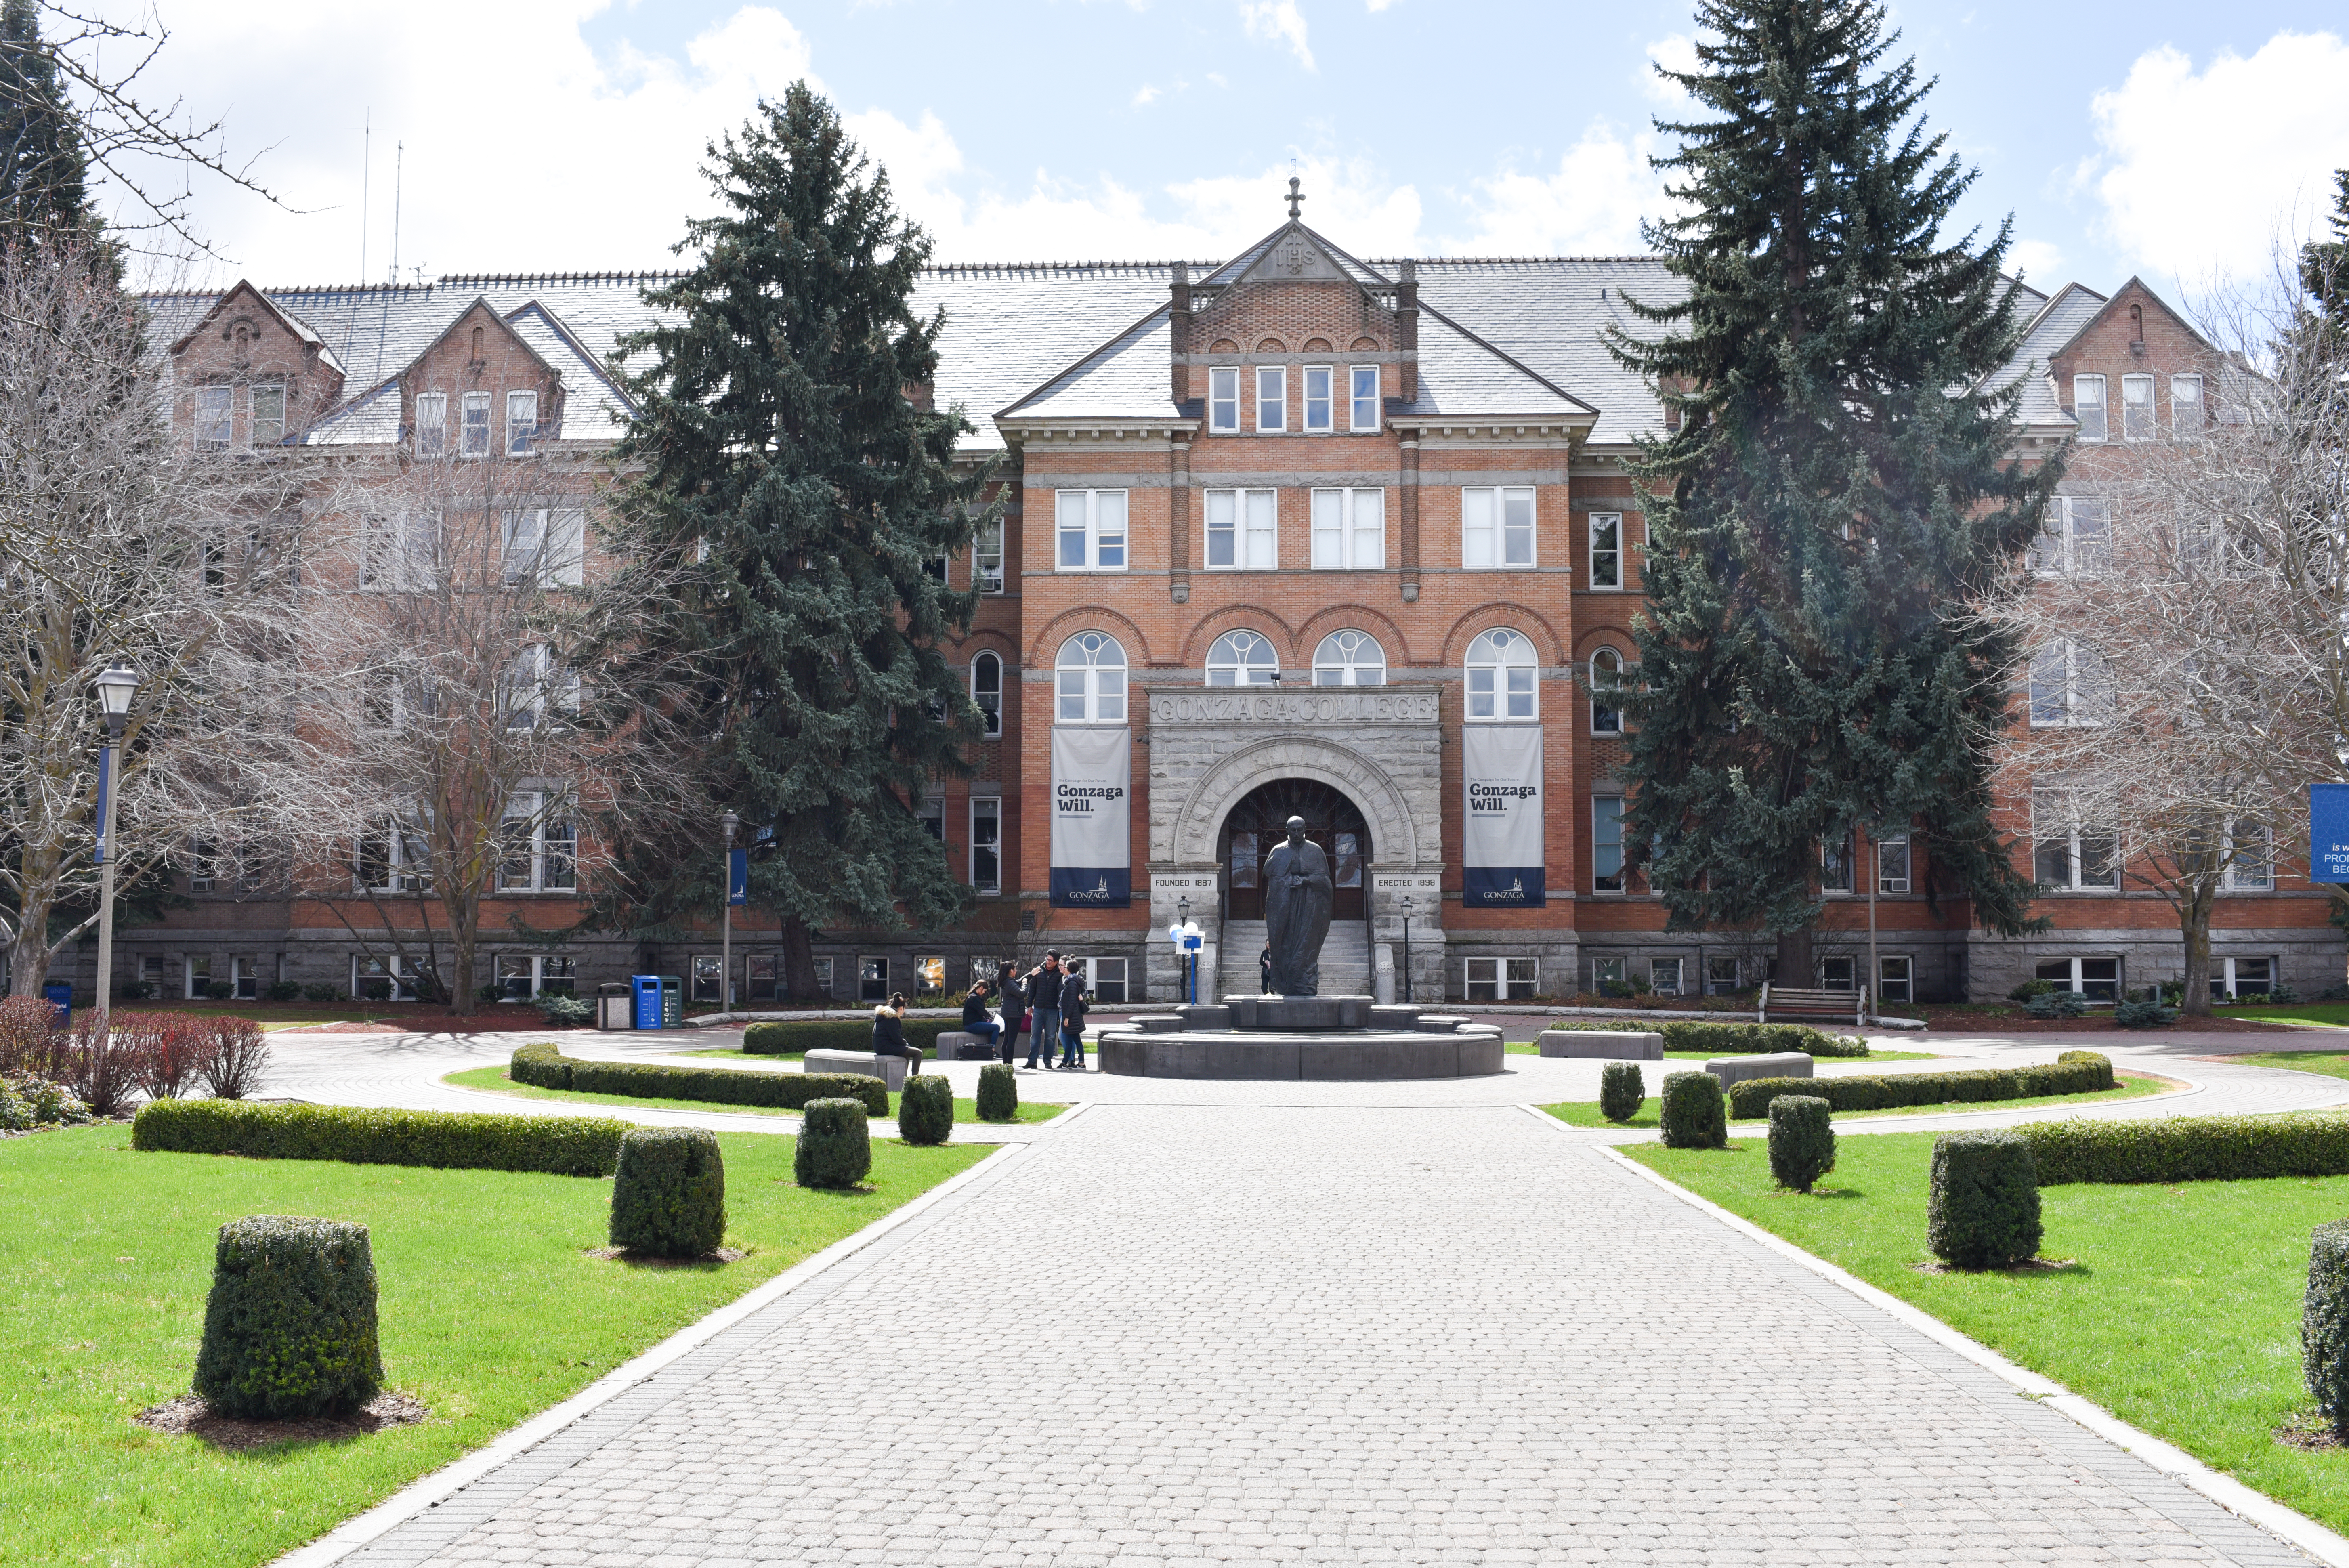 Started in 1881, Gonzaga University was founded by Father Joseph Cataldo, S.J. on 320 acres near Spokane Falls. (Image: Rebecca Mongrain/Seattle Refined)